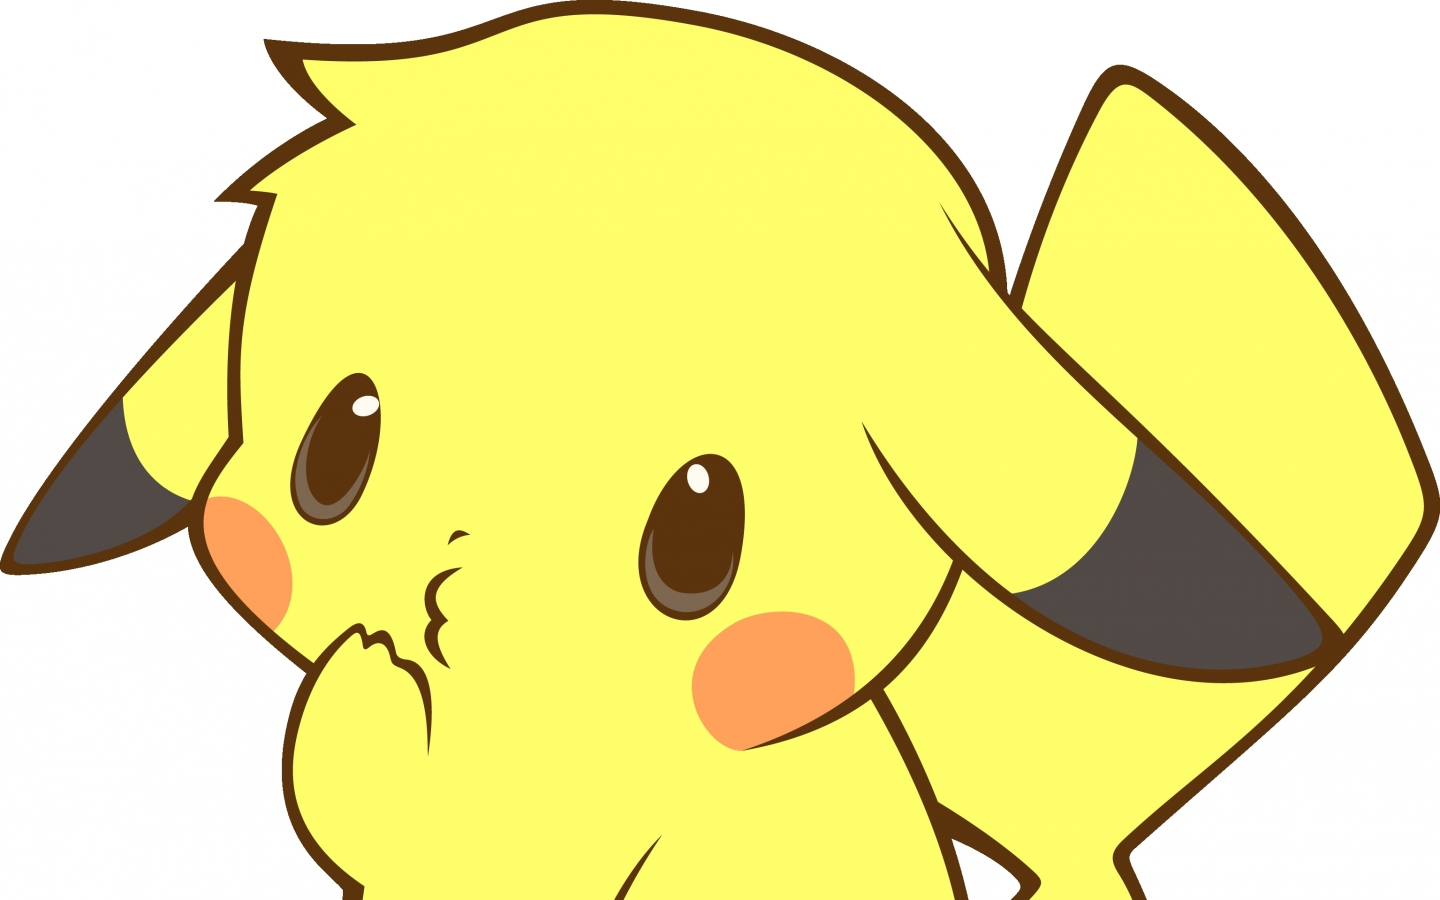 pokemon pikachu kawaii 3070x2635 wallpaper Quality WallpapersHi Res 1440x900